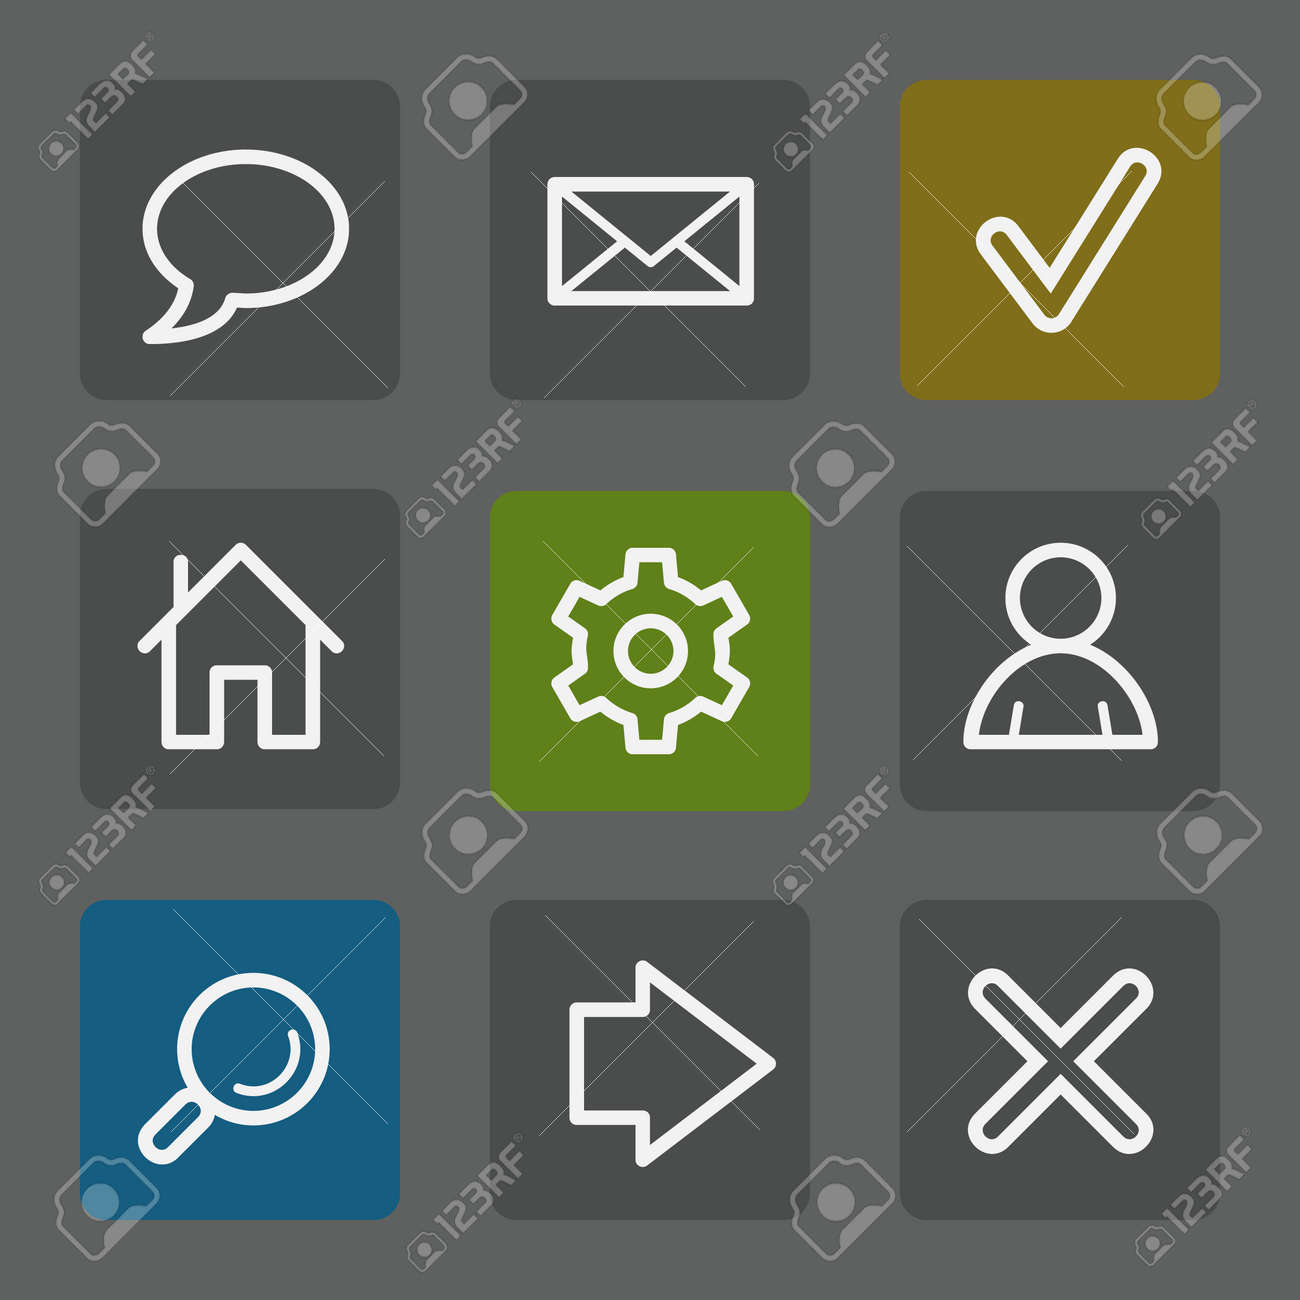 Basic web icons, flat buttons Stock Vector - 23159562